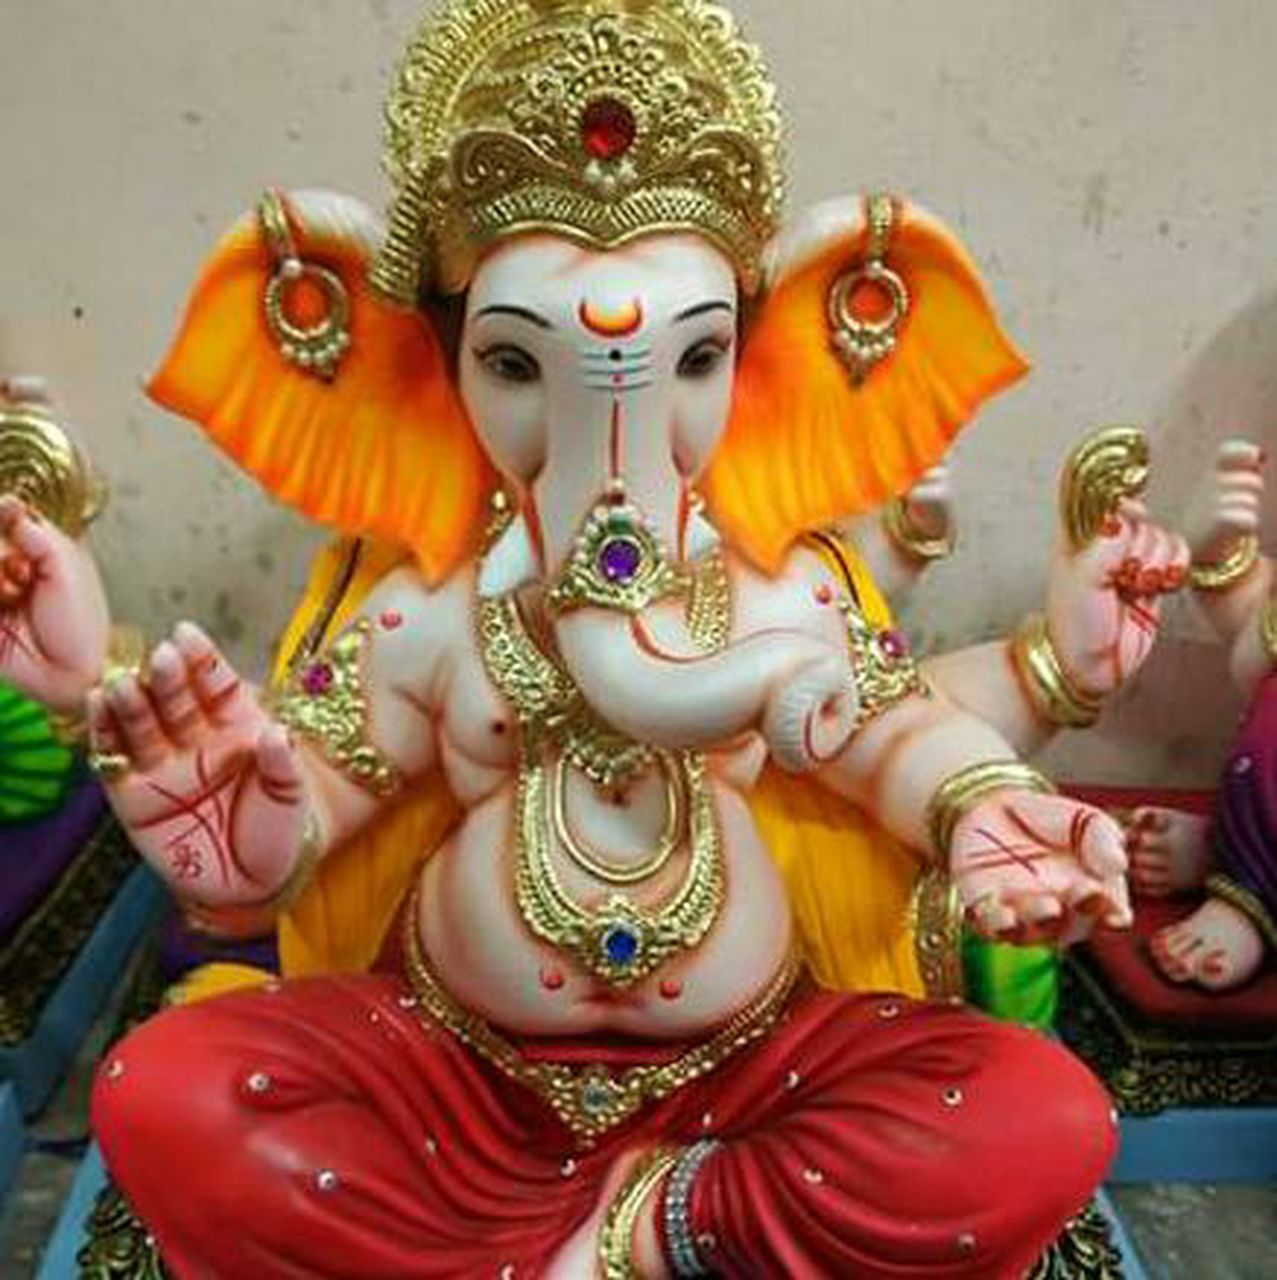 statue, human representation, sculpture, art and craft, religion, culture, spirituality, art, hindu god, close-up, creativity, tradition, temple - building, cultures, place of worship, golden, idol, mask - disguise, traditional, asian culture, multi colored, vibrant color, religious offering, person, mythology